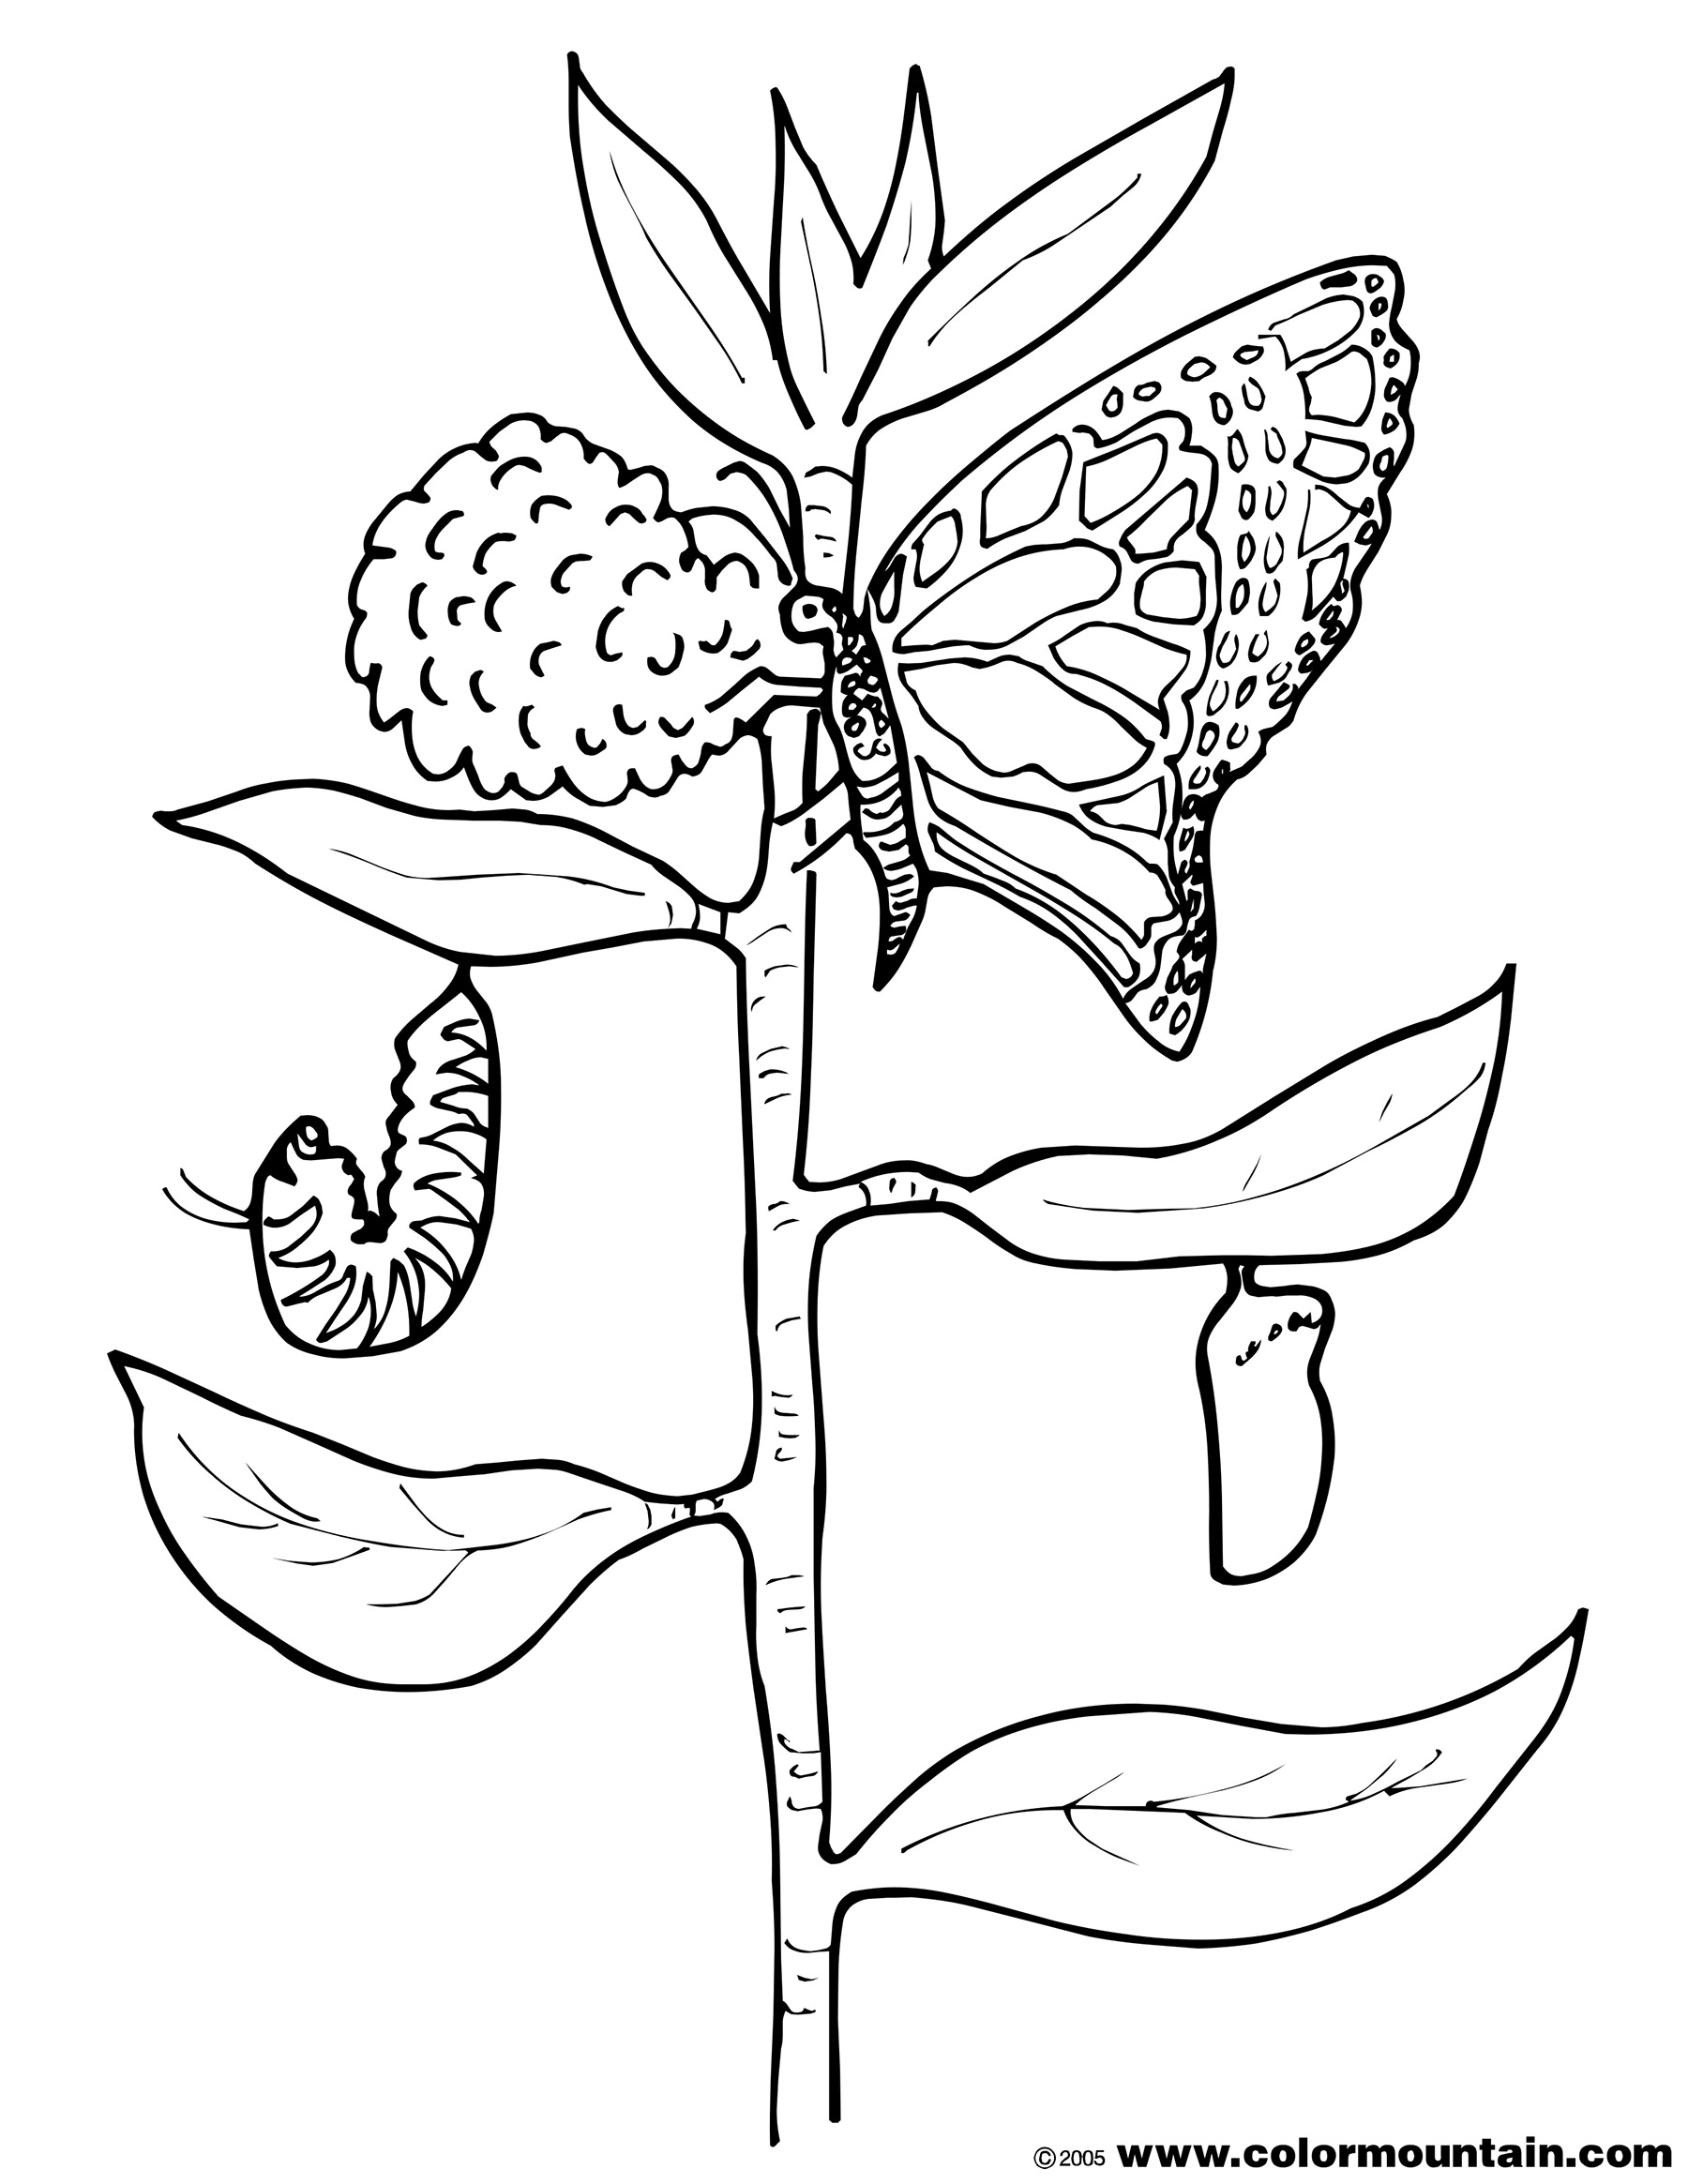 butterfly chrysalis coloring pages - photo#15